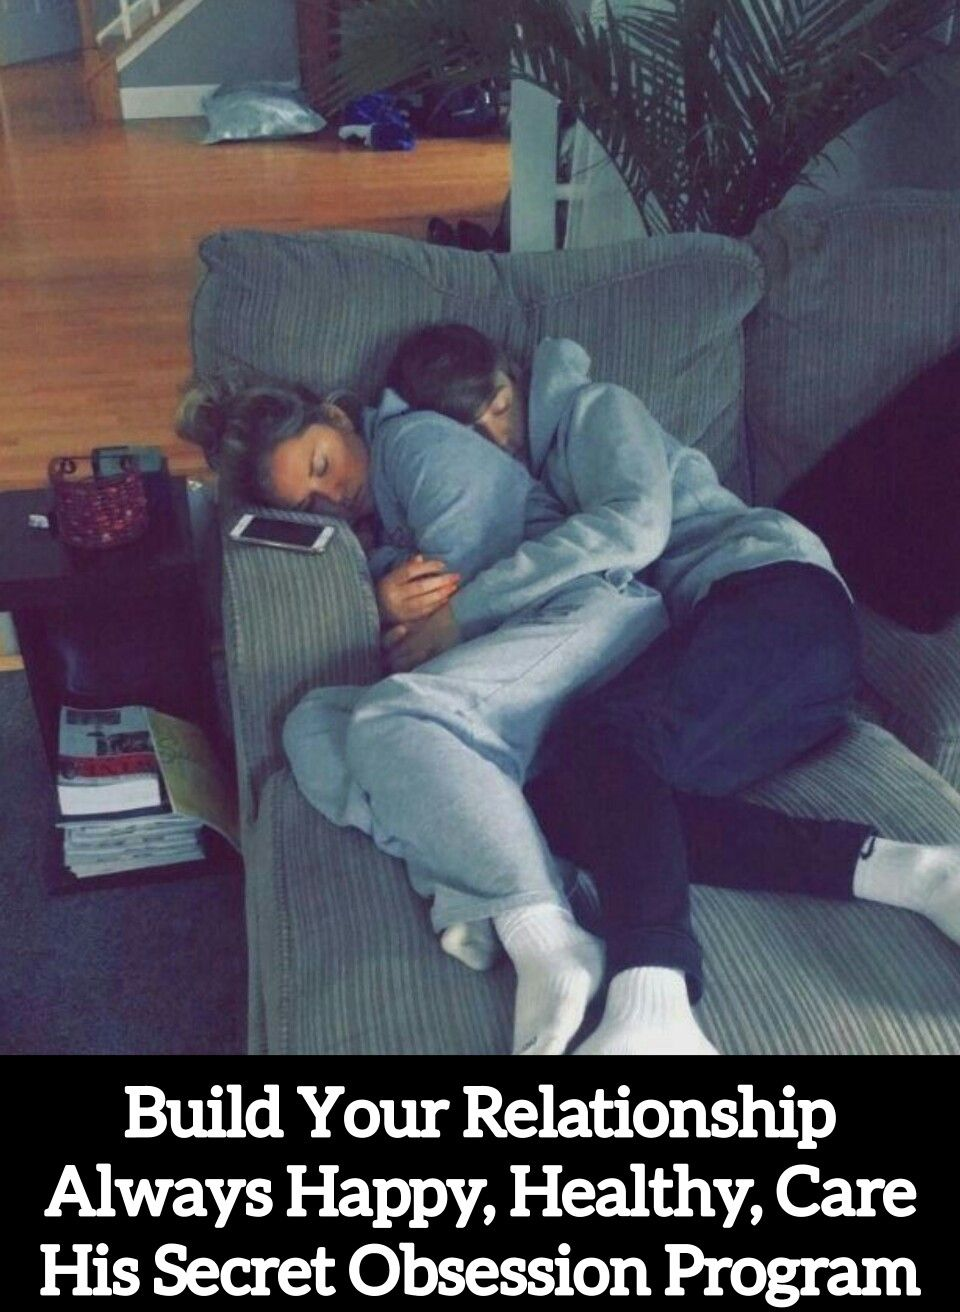 Build Your Relationship Always Strong, Happy, Heal